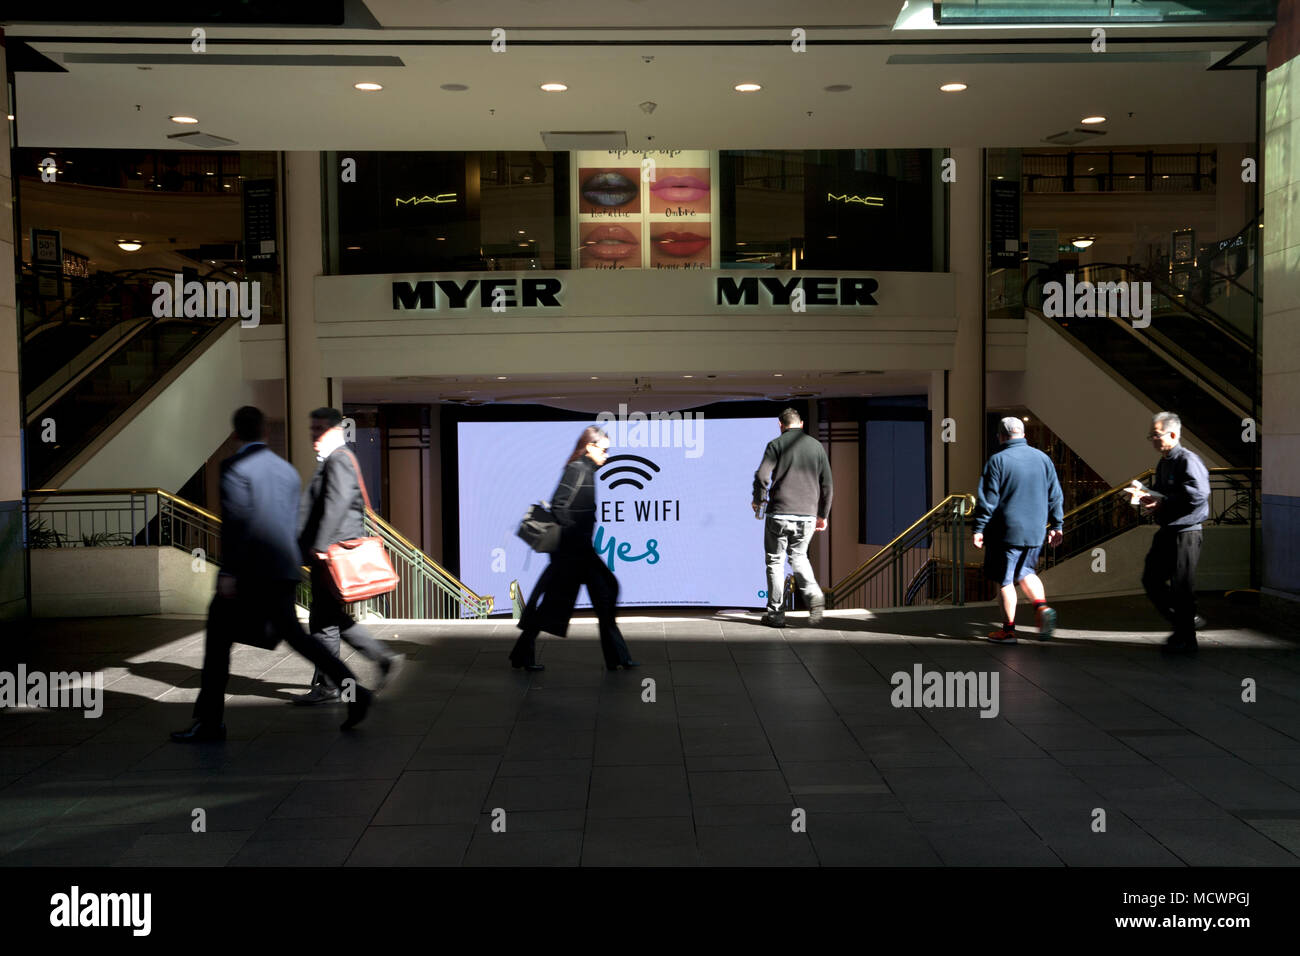 de105ee57fb pitt street central business district sydney new south wales australia -  Stock Image